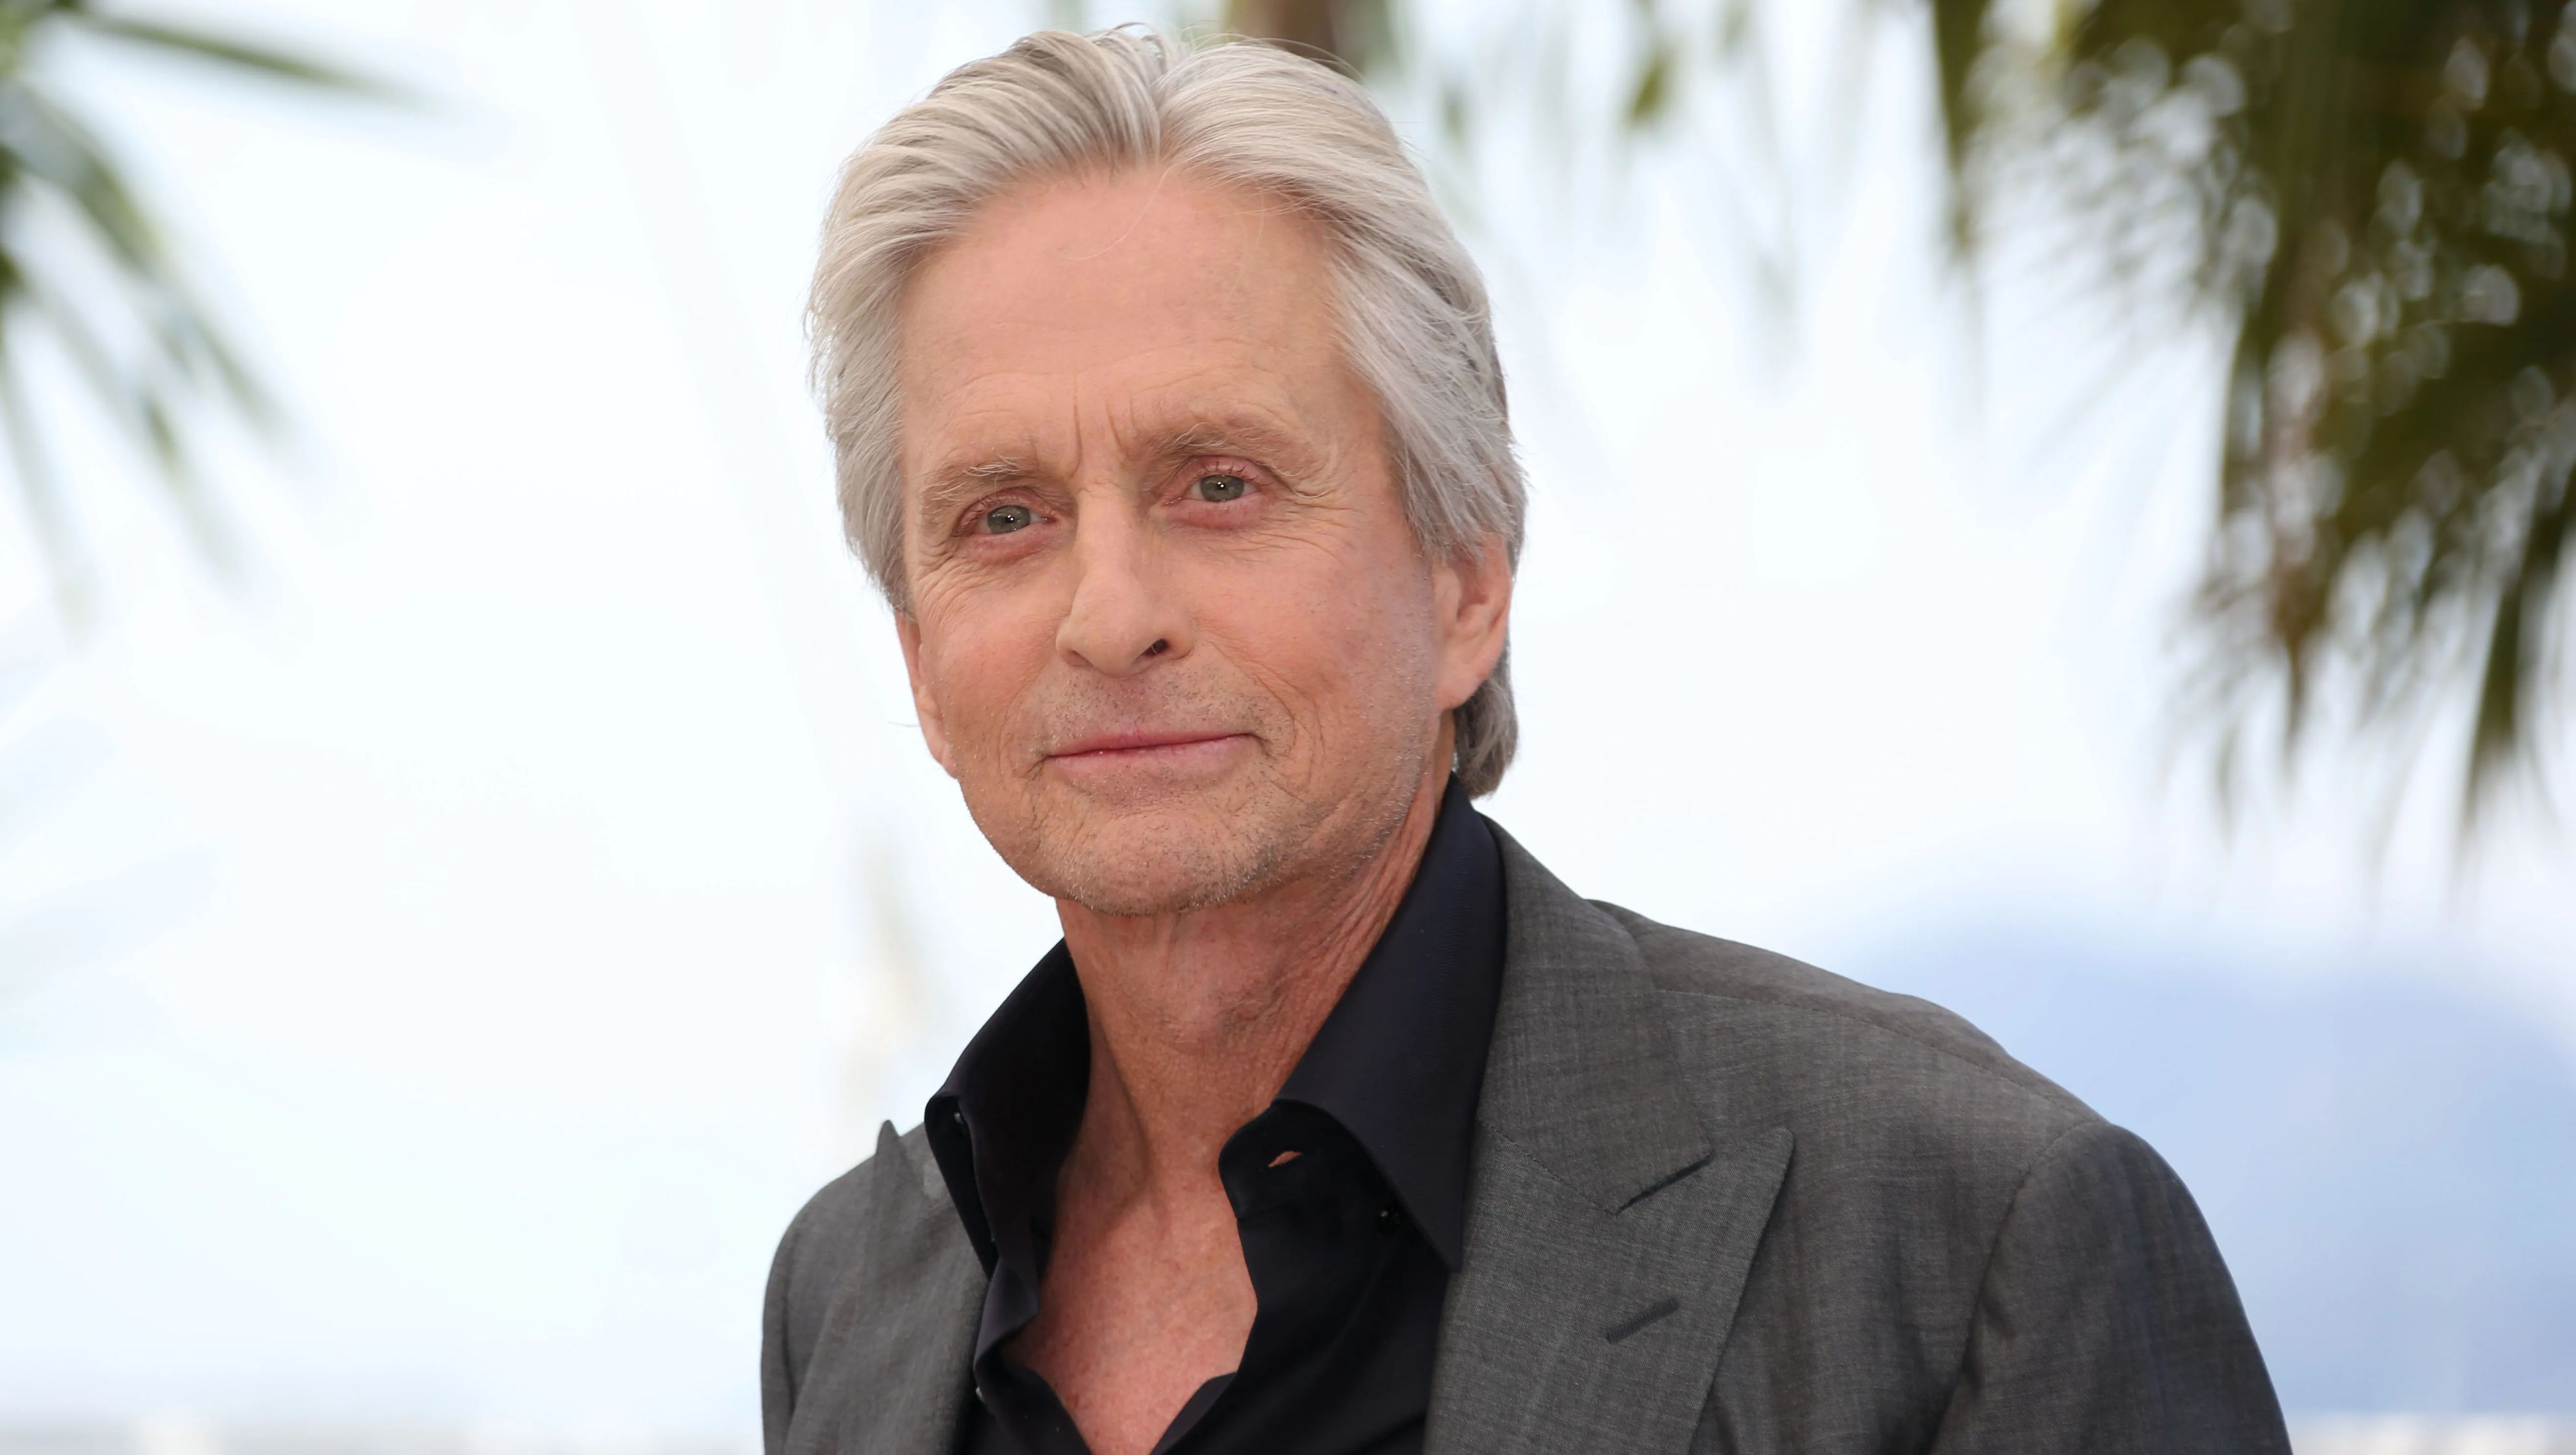 Michael Douglas in a black button up and gray sport coat